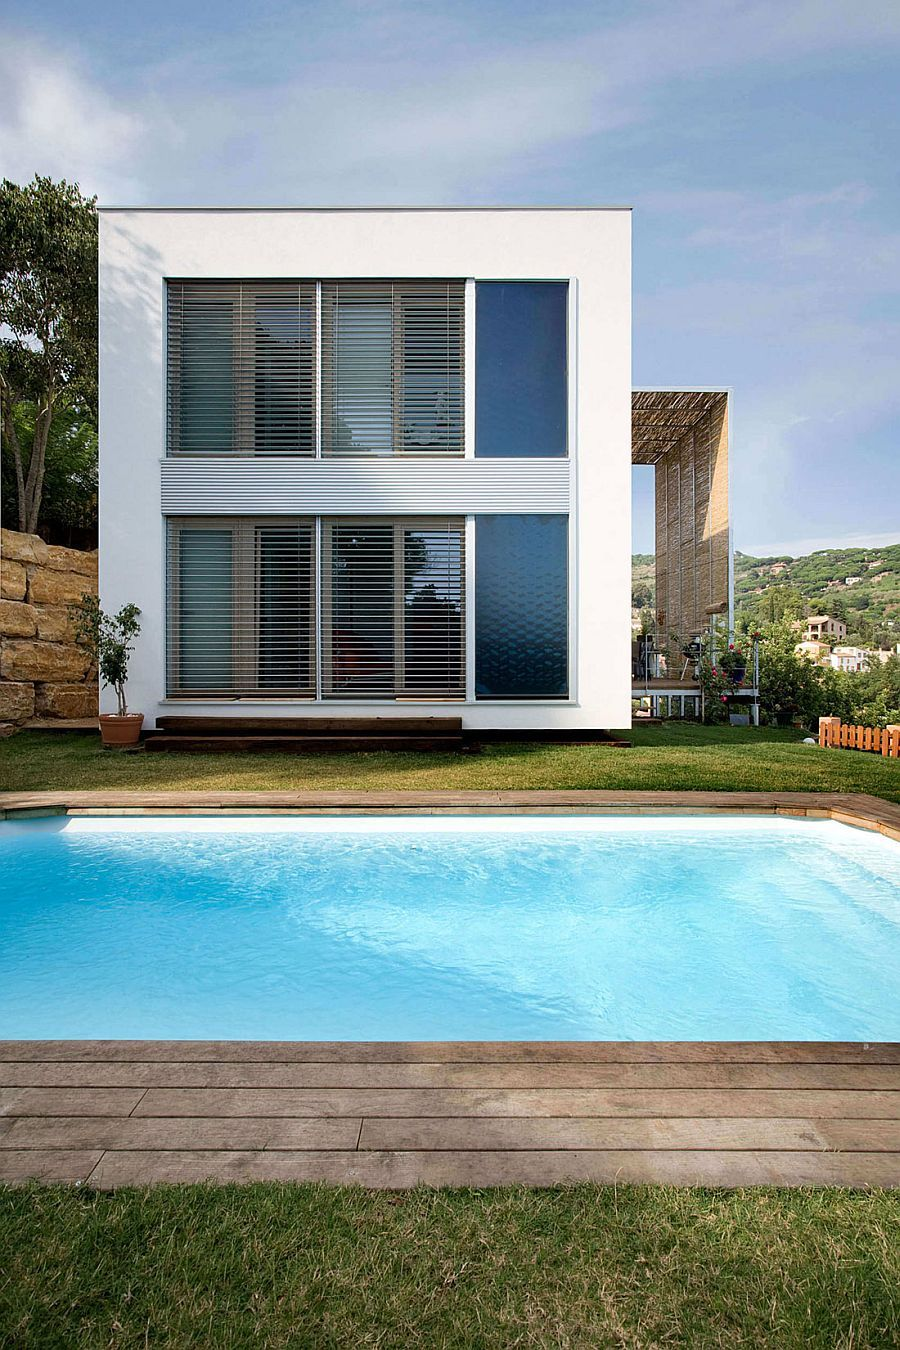 Laminated wood and glass structure Casa Saüc Solar Shading and Smart Design Shape Energy Efficient Barcelona Home